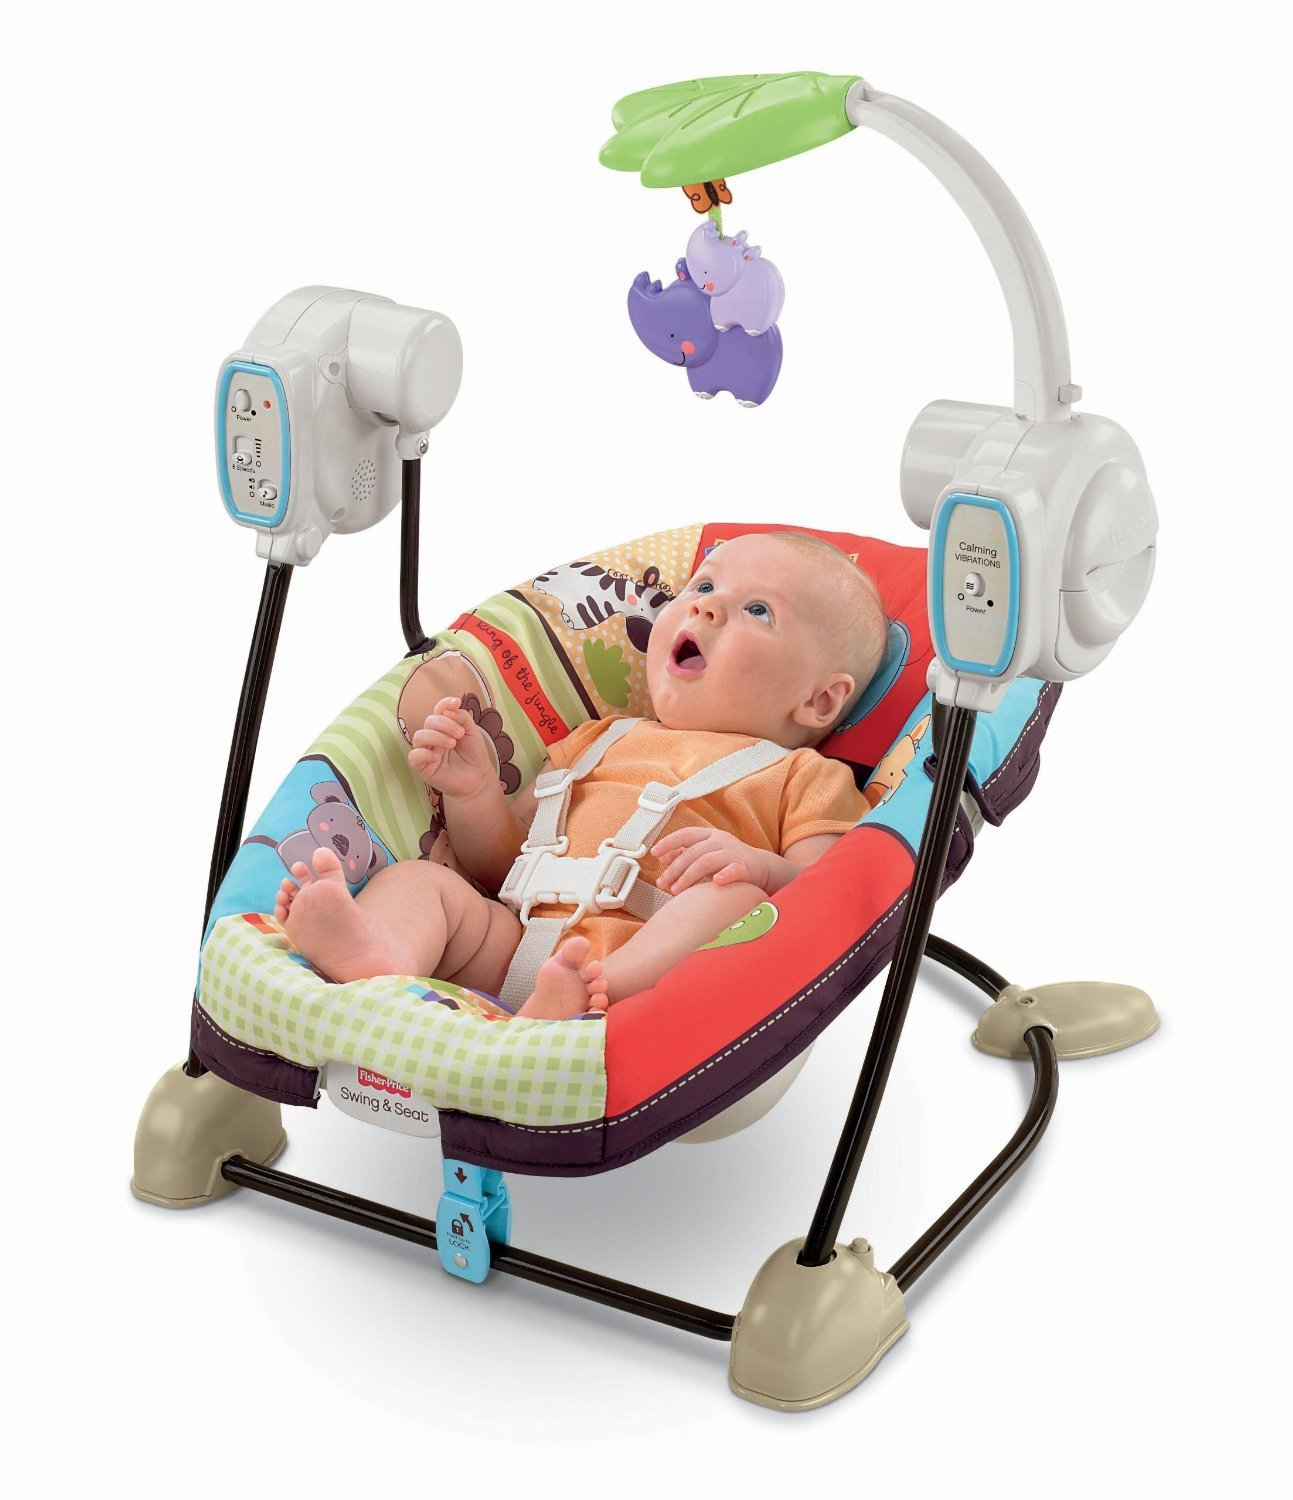 Fisher-Price Space Saver Swing and Seat, Luv U Zoo Amazonca/FISNE BML92